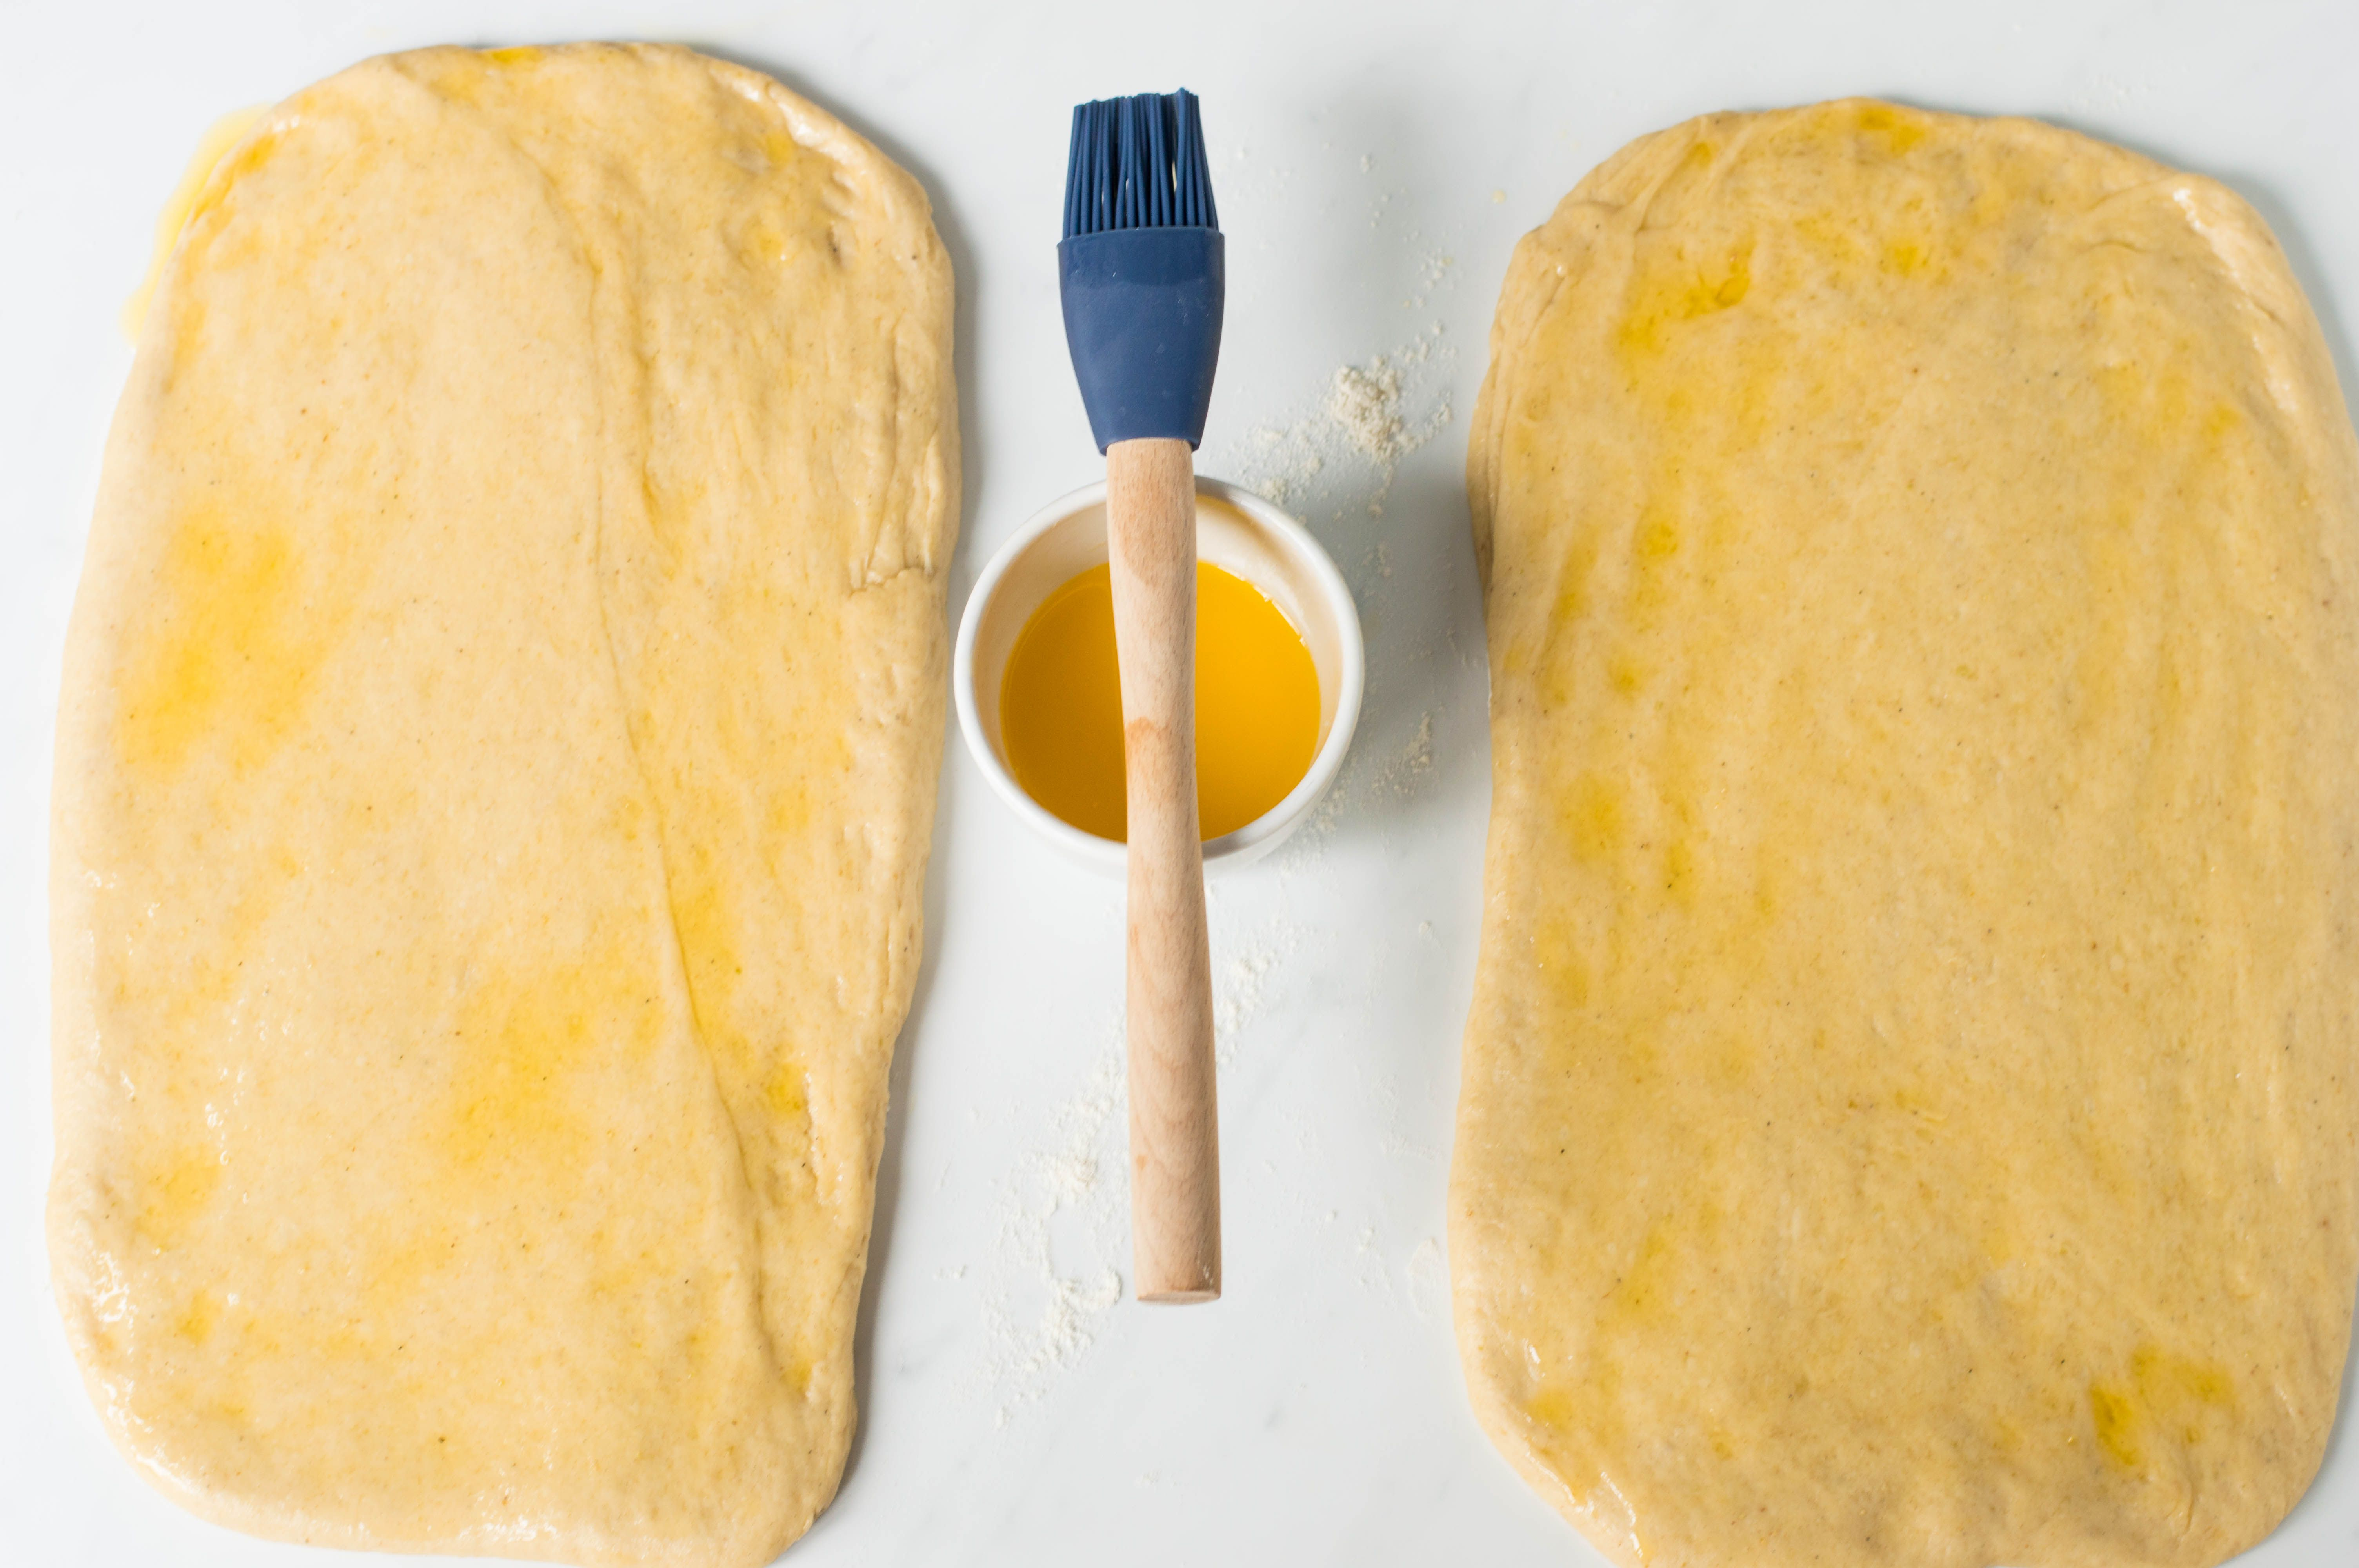 Rolled-out dough brushed with butter